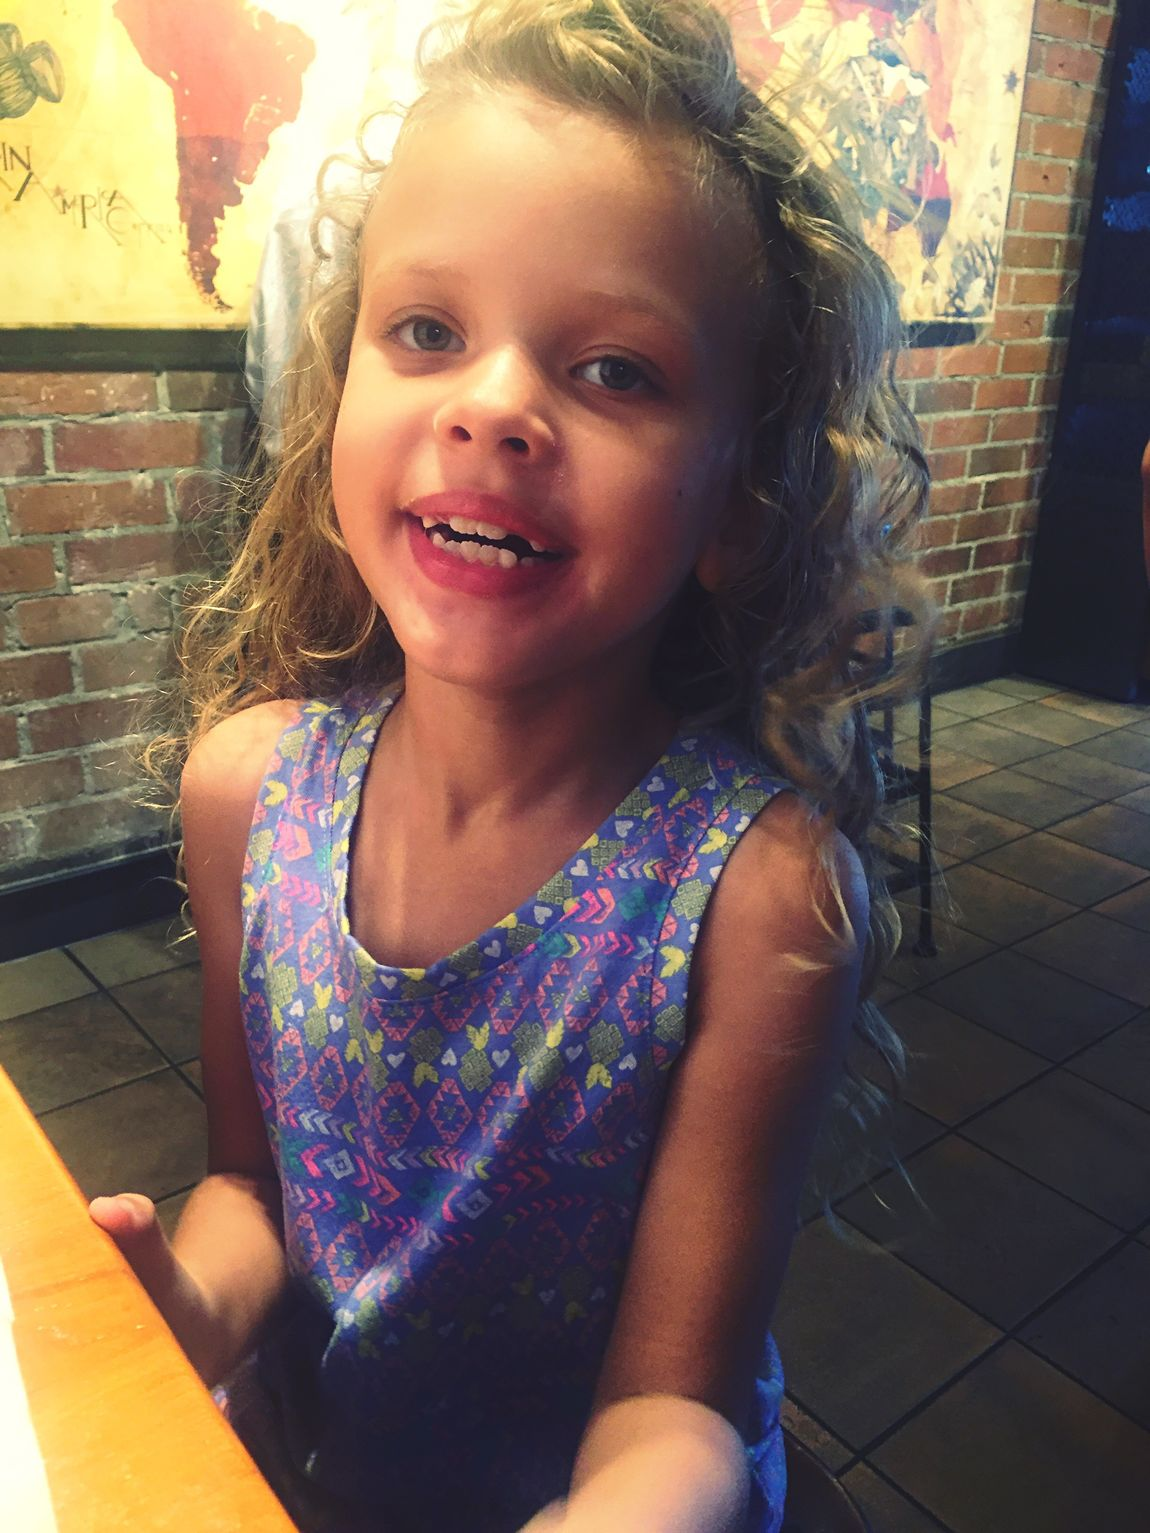 My Madilyn, So Big- People Children Family Daughter Madilyn Girl Growing Enjoying Life Love Colour Of Life Lifeisbeautiful Smile